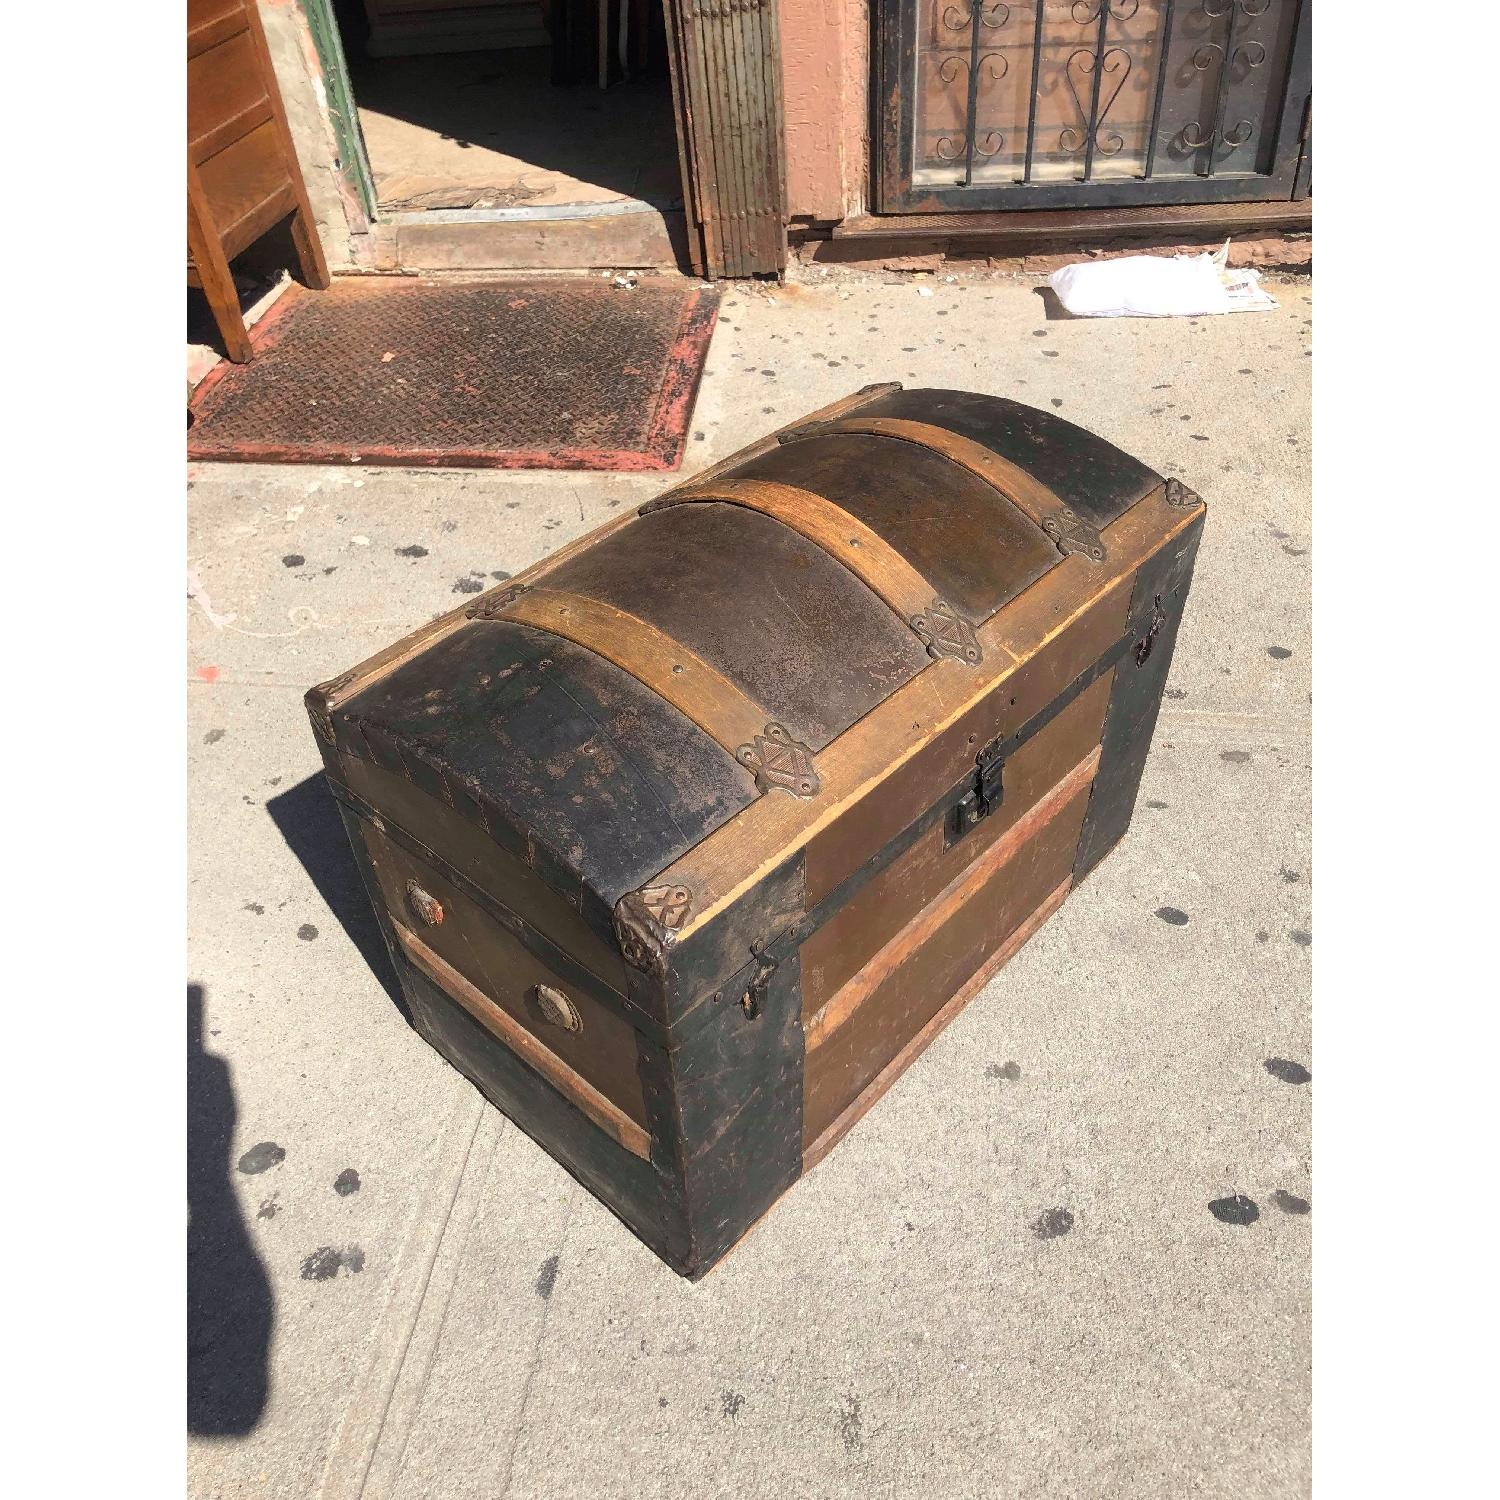 Antique 19th Century Dome Top Storage Trunk w/ Wheels - image-3